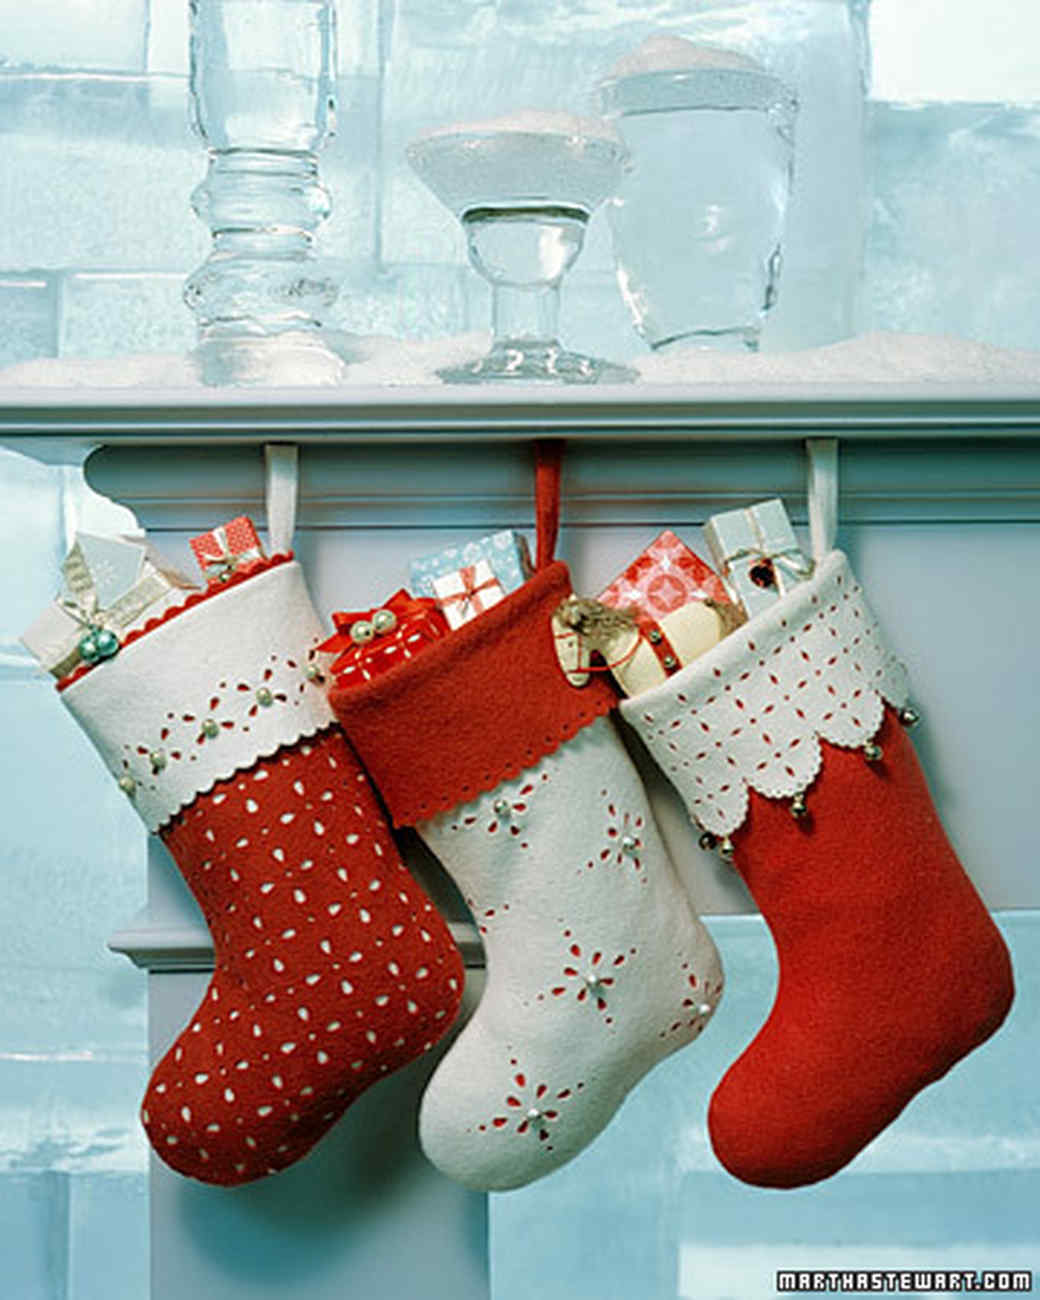 Jingle bell stockings martha stewart jingle bell stockings dt1010fo